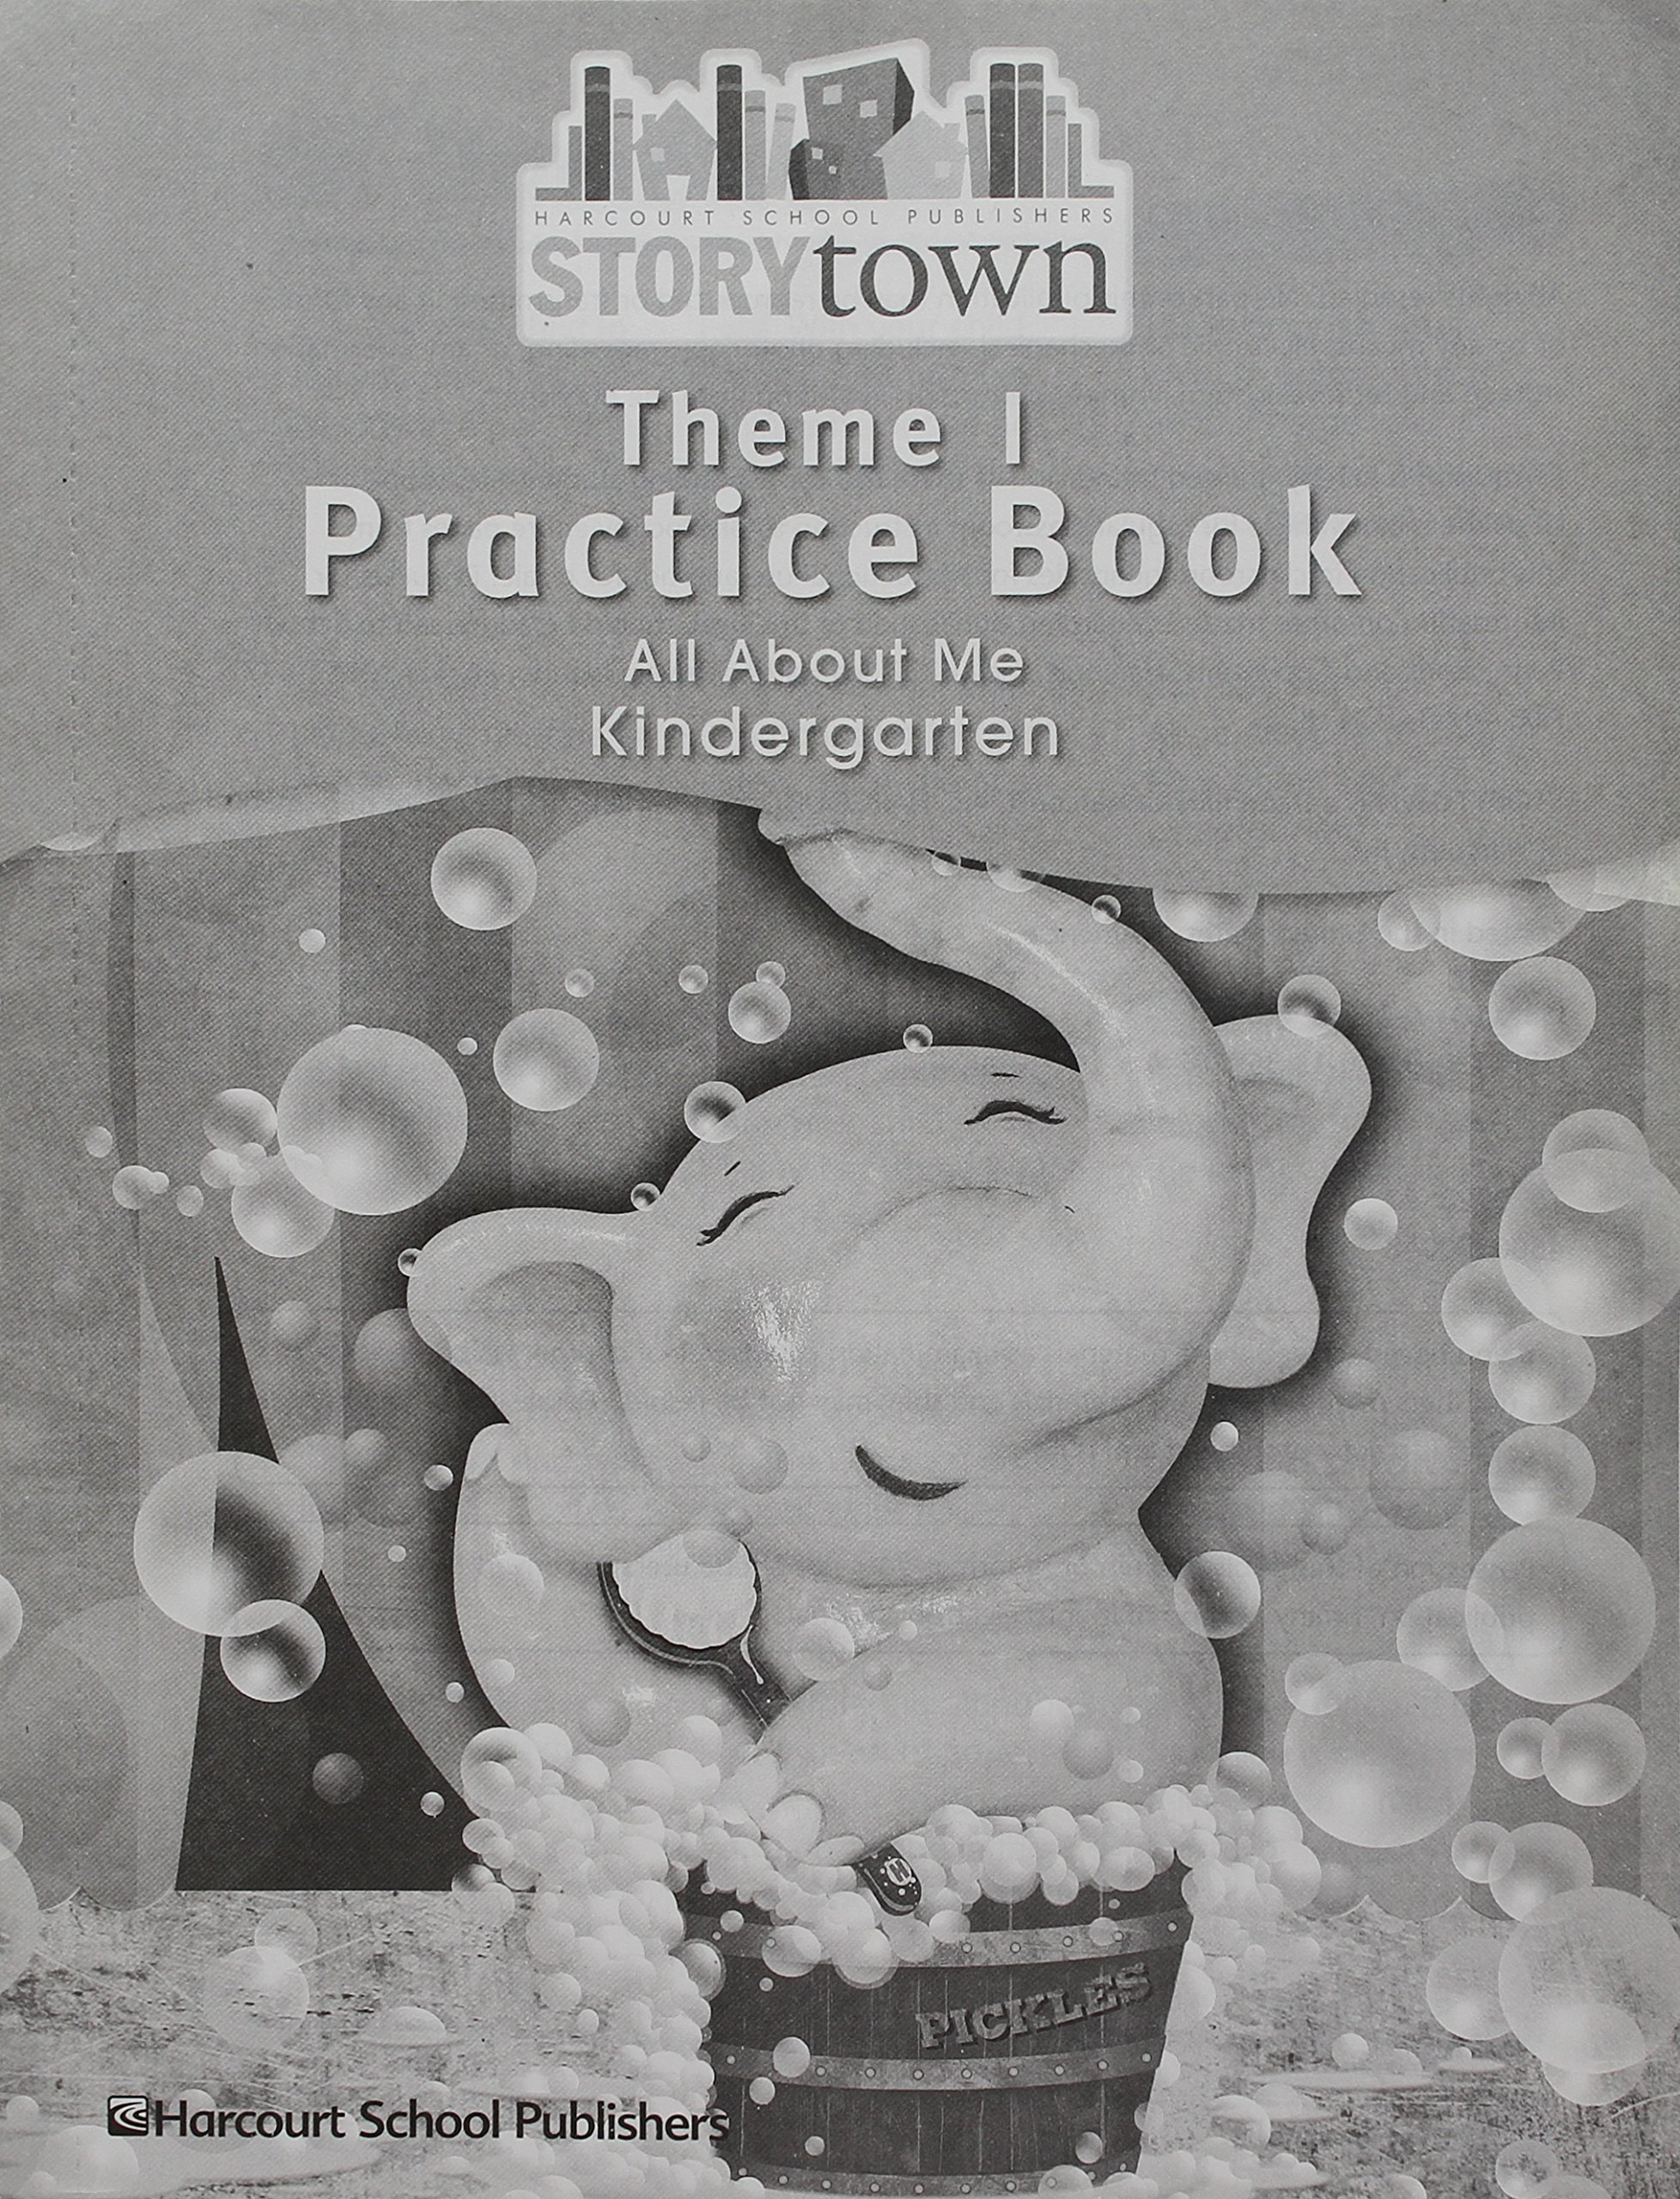 Download Storytown: Practice Book Student Edition, Theme 1 Grade K pdf